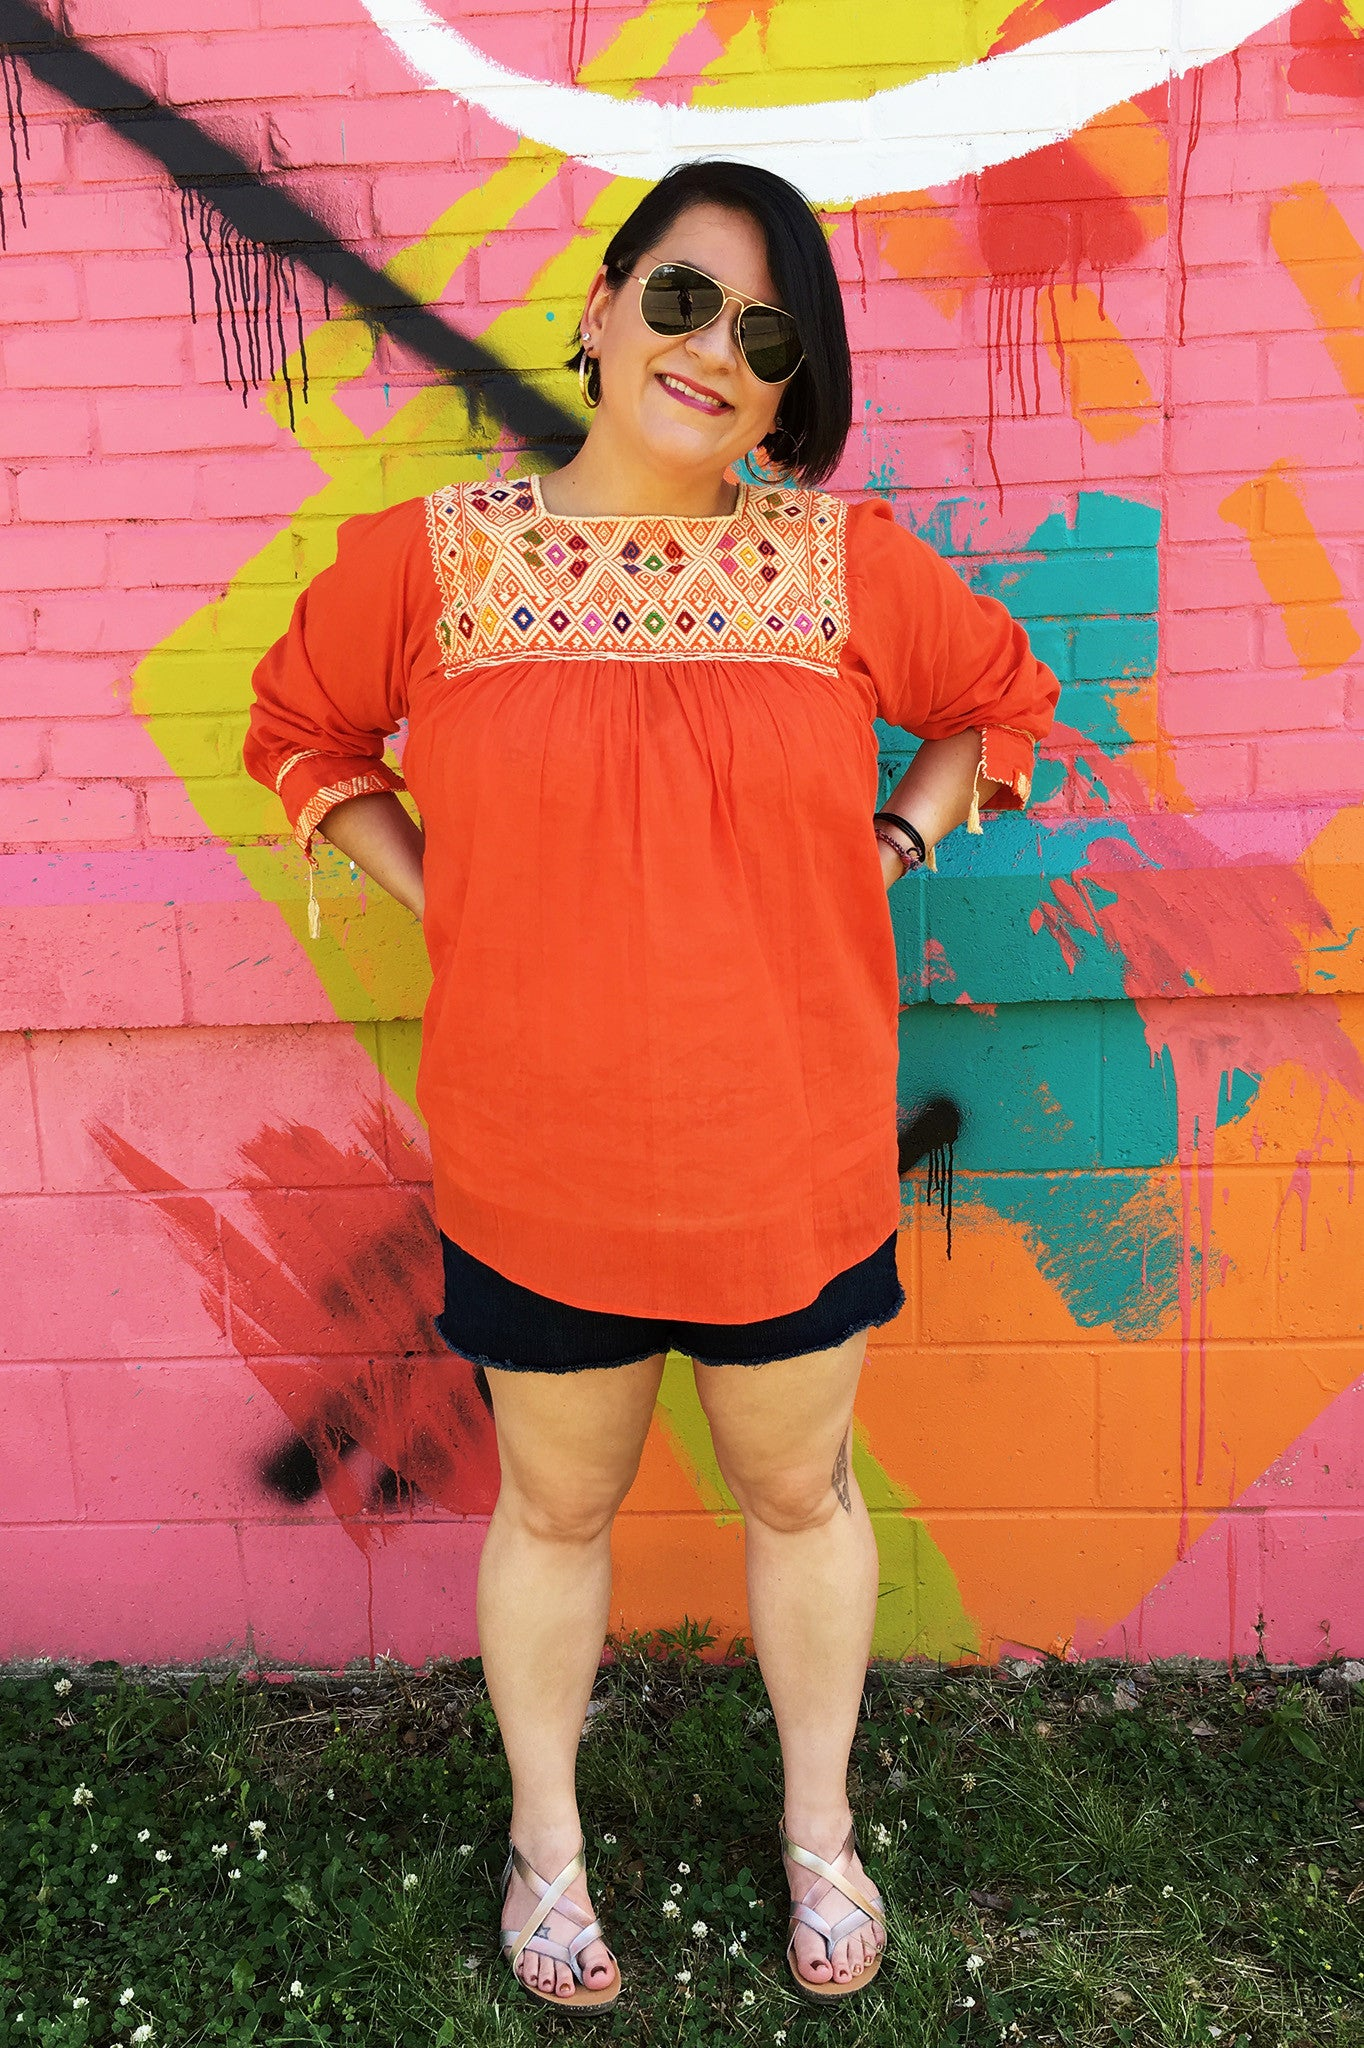 ShopMucho women's Mexican embroidered blouses sister summer style blog post downtown Memphis TN